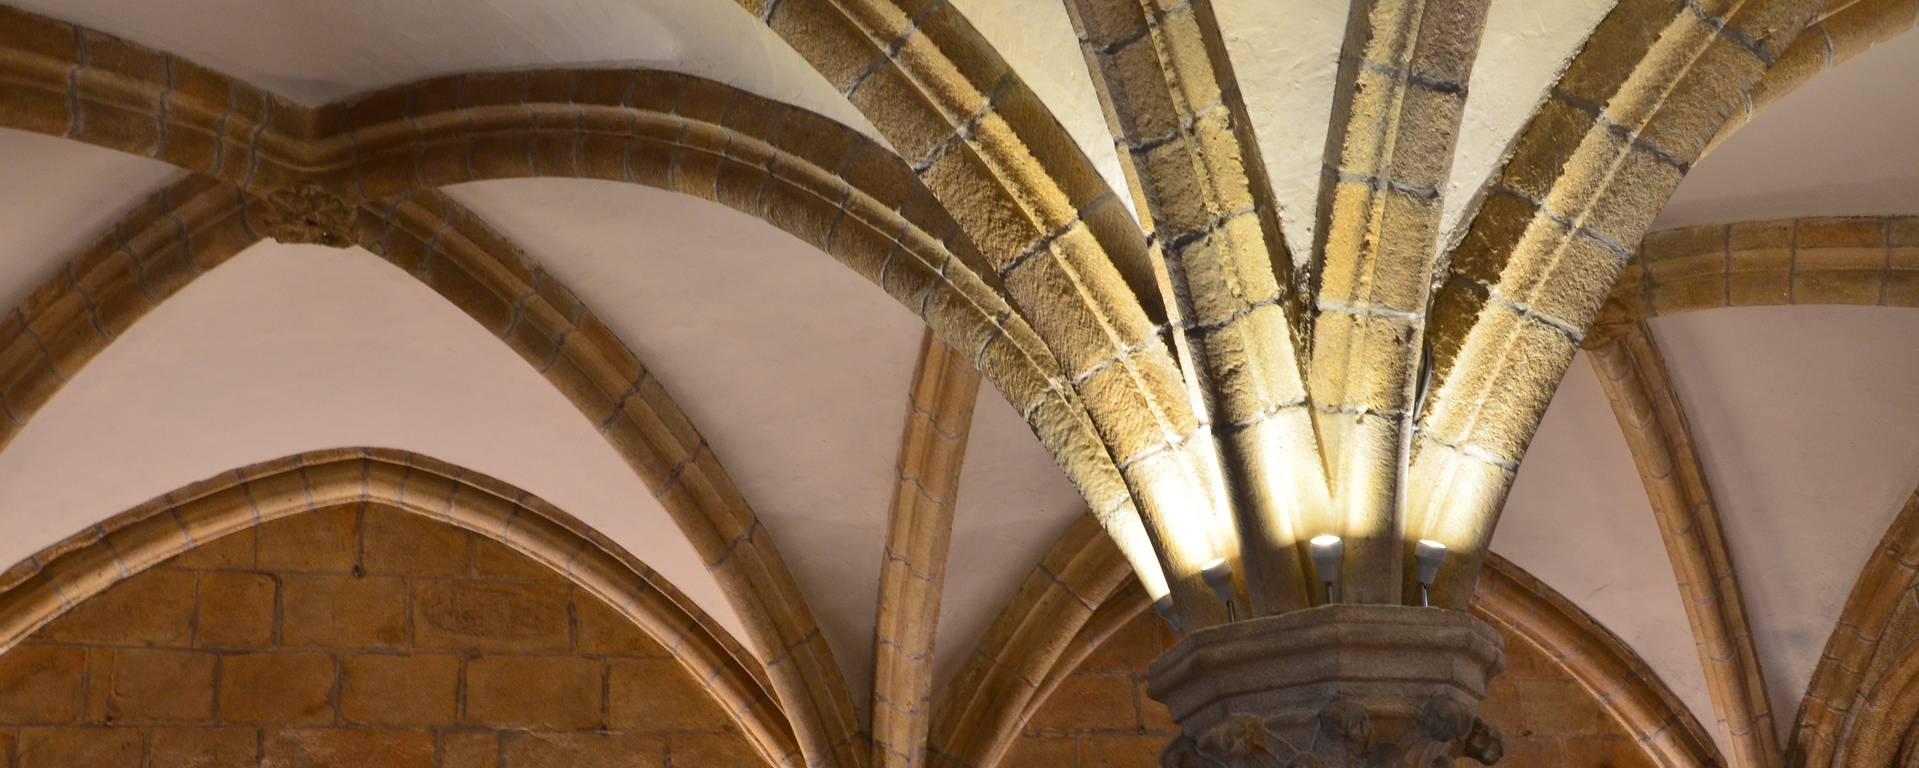 Vaults of the chapter house - © Roi Morvan Communauté